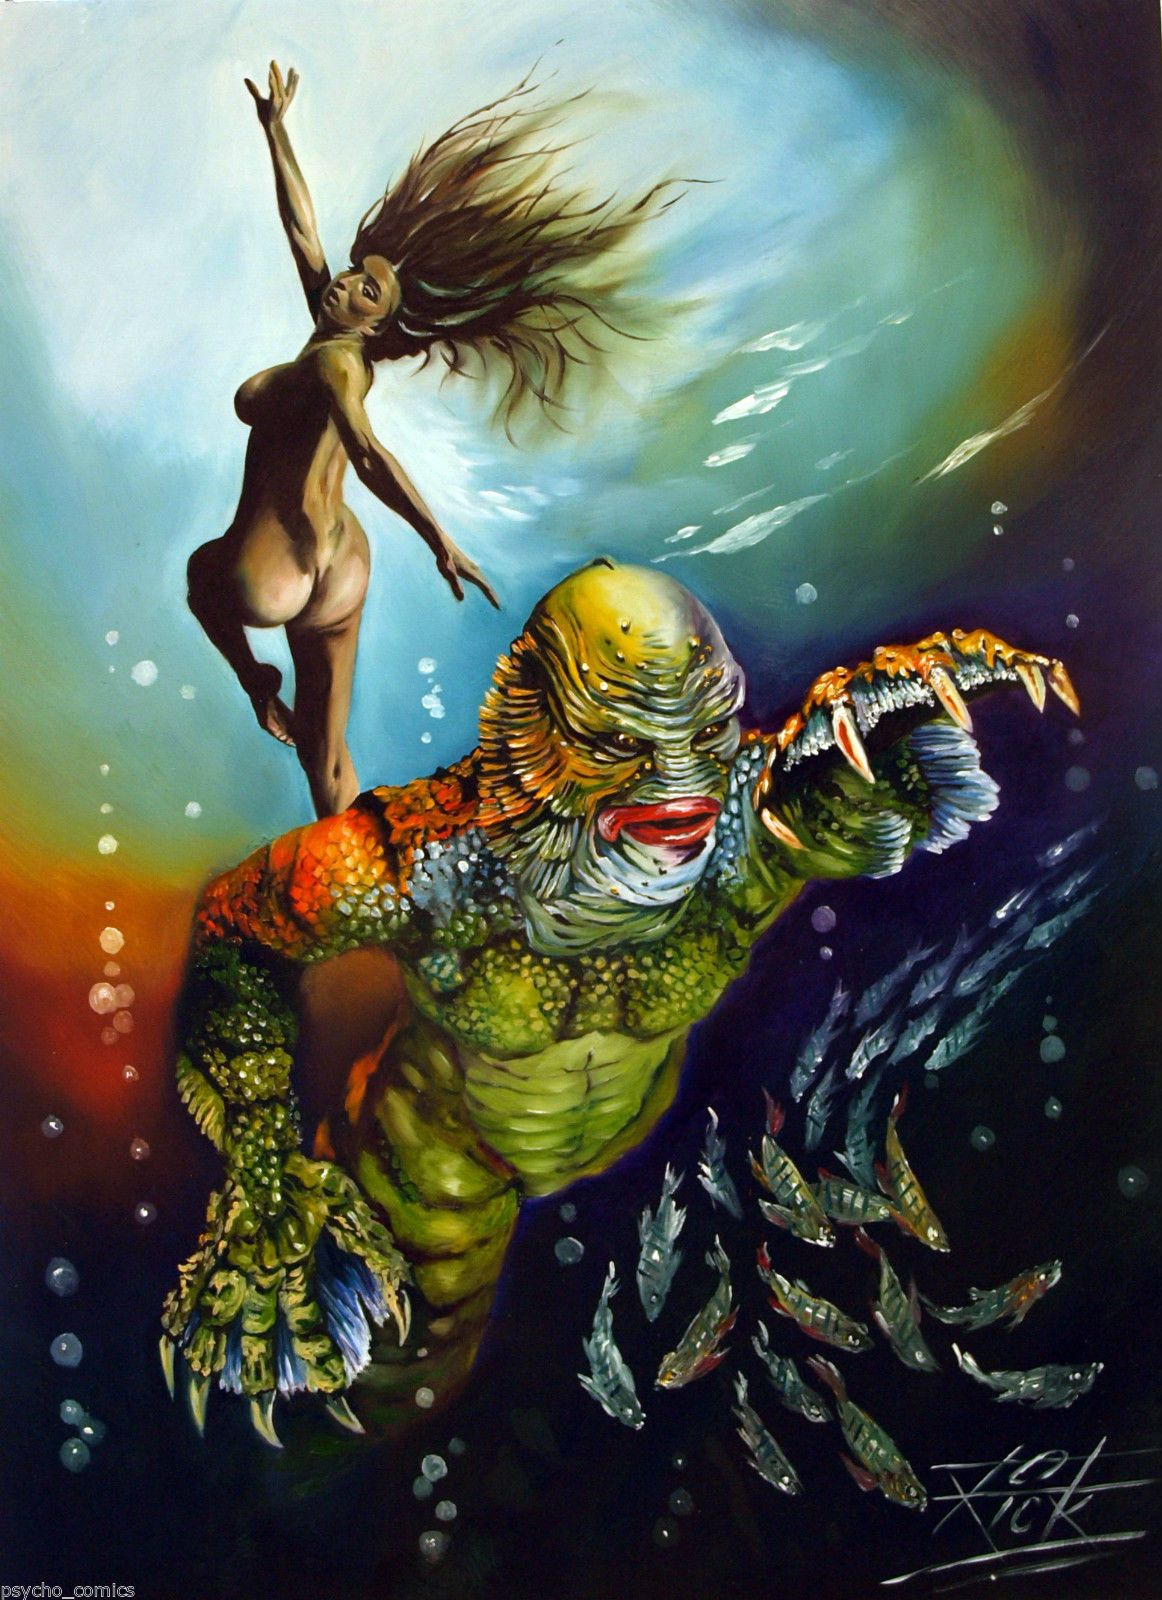 1162x1600 Creature From The Black Lagoon.original Oil Painting By Rick Melton. - Creature From The Black Lagoon Painting